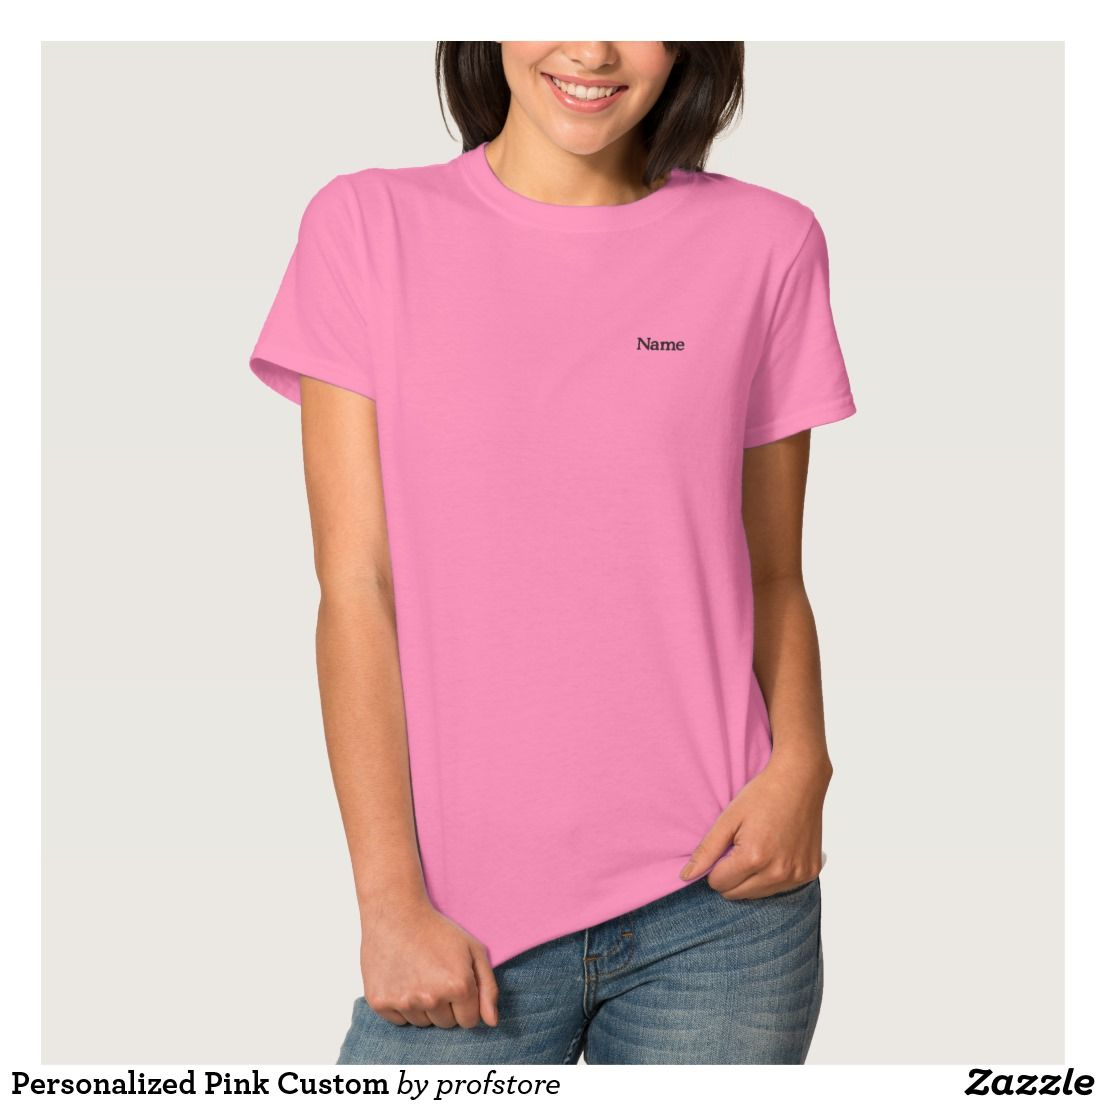 Personalized Pink Custom Embroidered Shirt Custom Embroidered Shirts